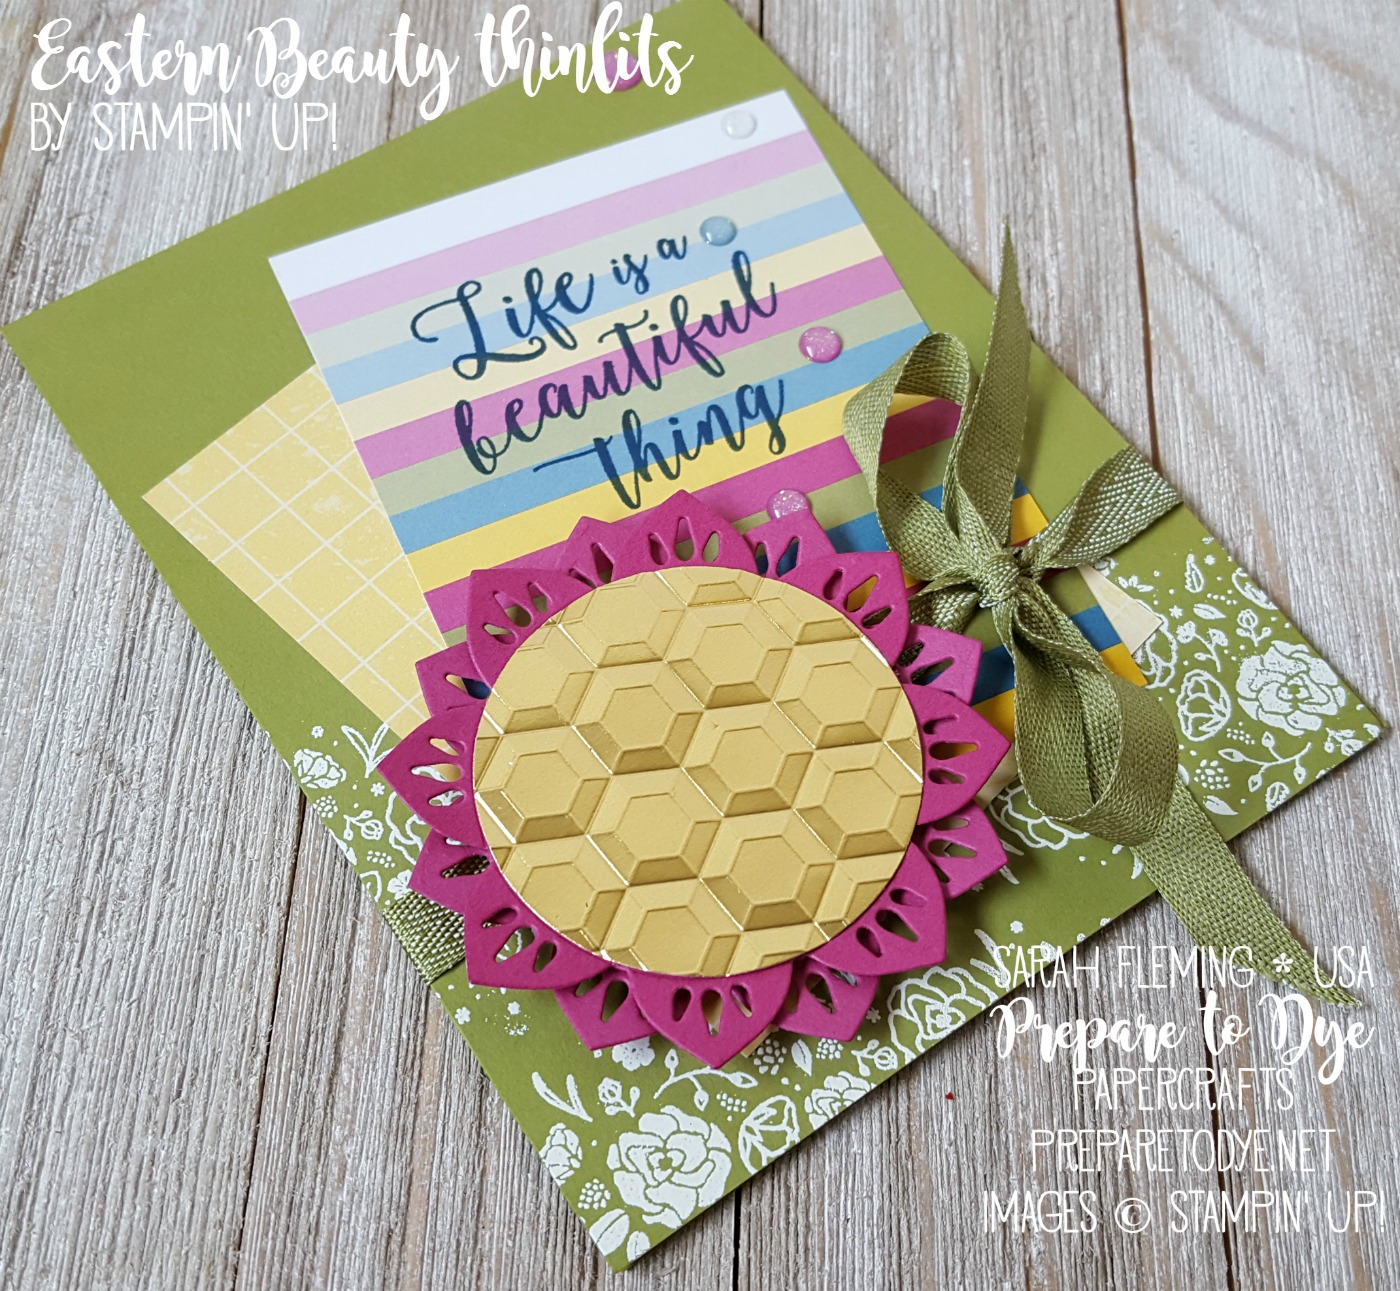 Stampin' Up! Color Theory Memories & More card pack with Eastern Medallions thinlits, Colorful Seasons stamps, Wood Words stamps, Hexagon Dynamic embossing folder and new Mini Chevron Ribbon - Splitcoaststampers Creative Crew - Sarah Fleming - Prepare to Dye Papercrafts